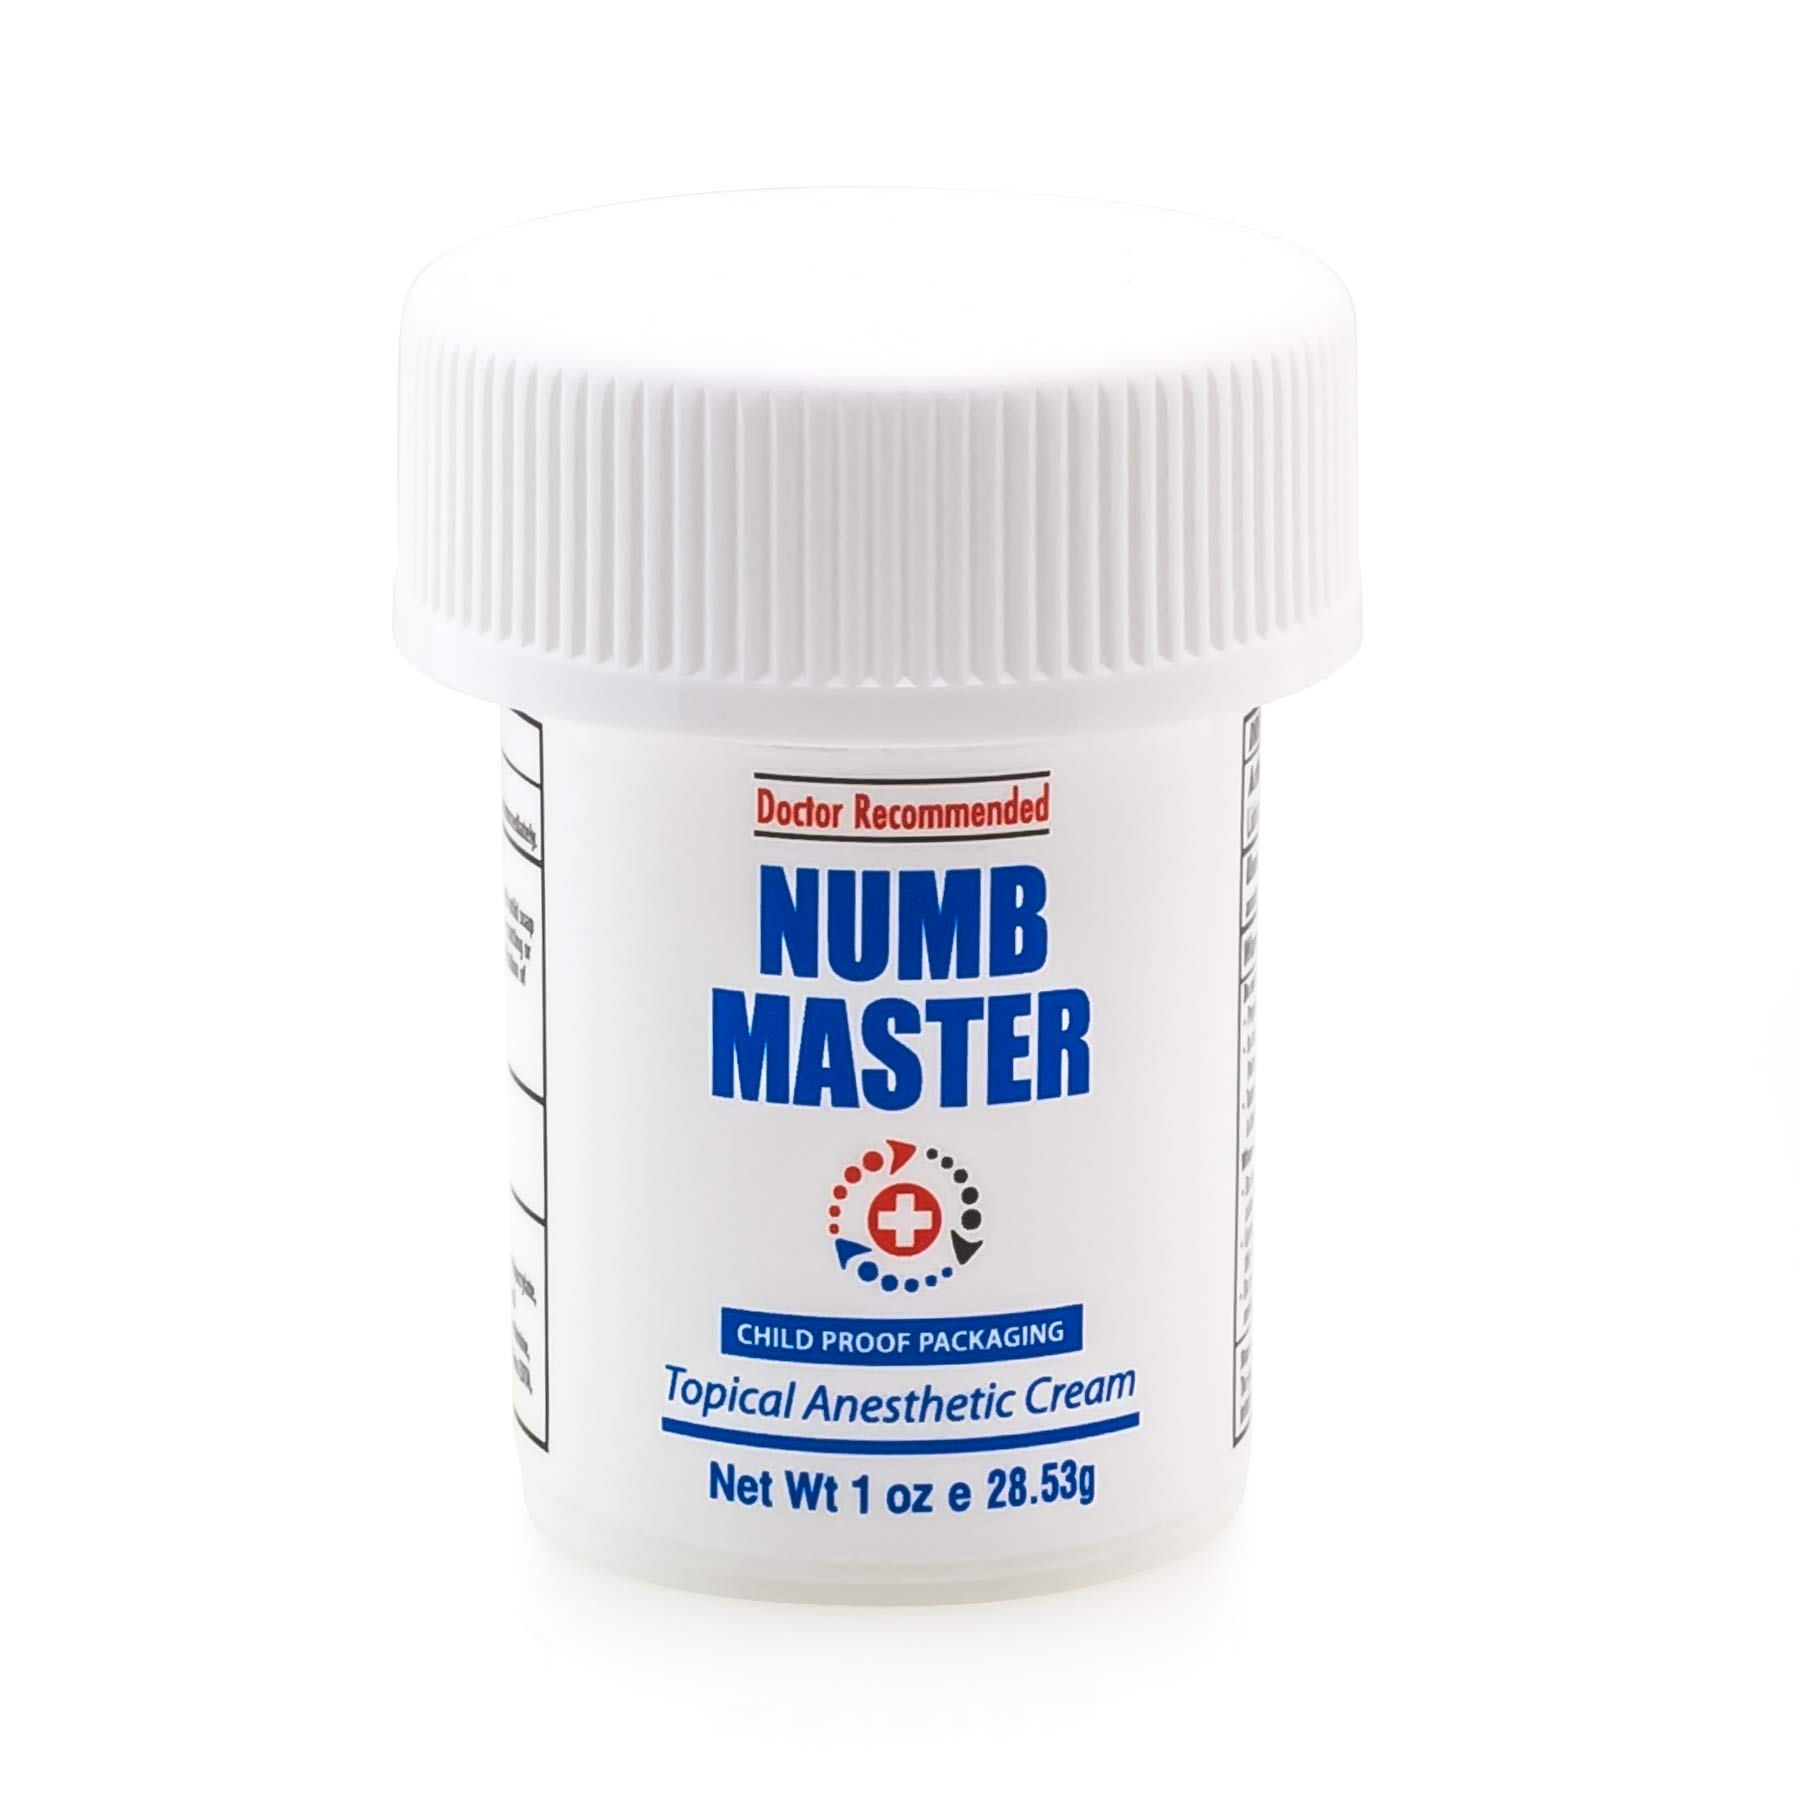 Numb Master 5% Lidocaine Topical Numbing Cream for Pain Relief, 1oz Max Strength Fast Acting Non Oily Local Anesthetic, Made in USA by Clinical Resolution Laboratory